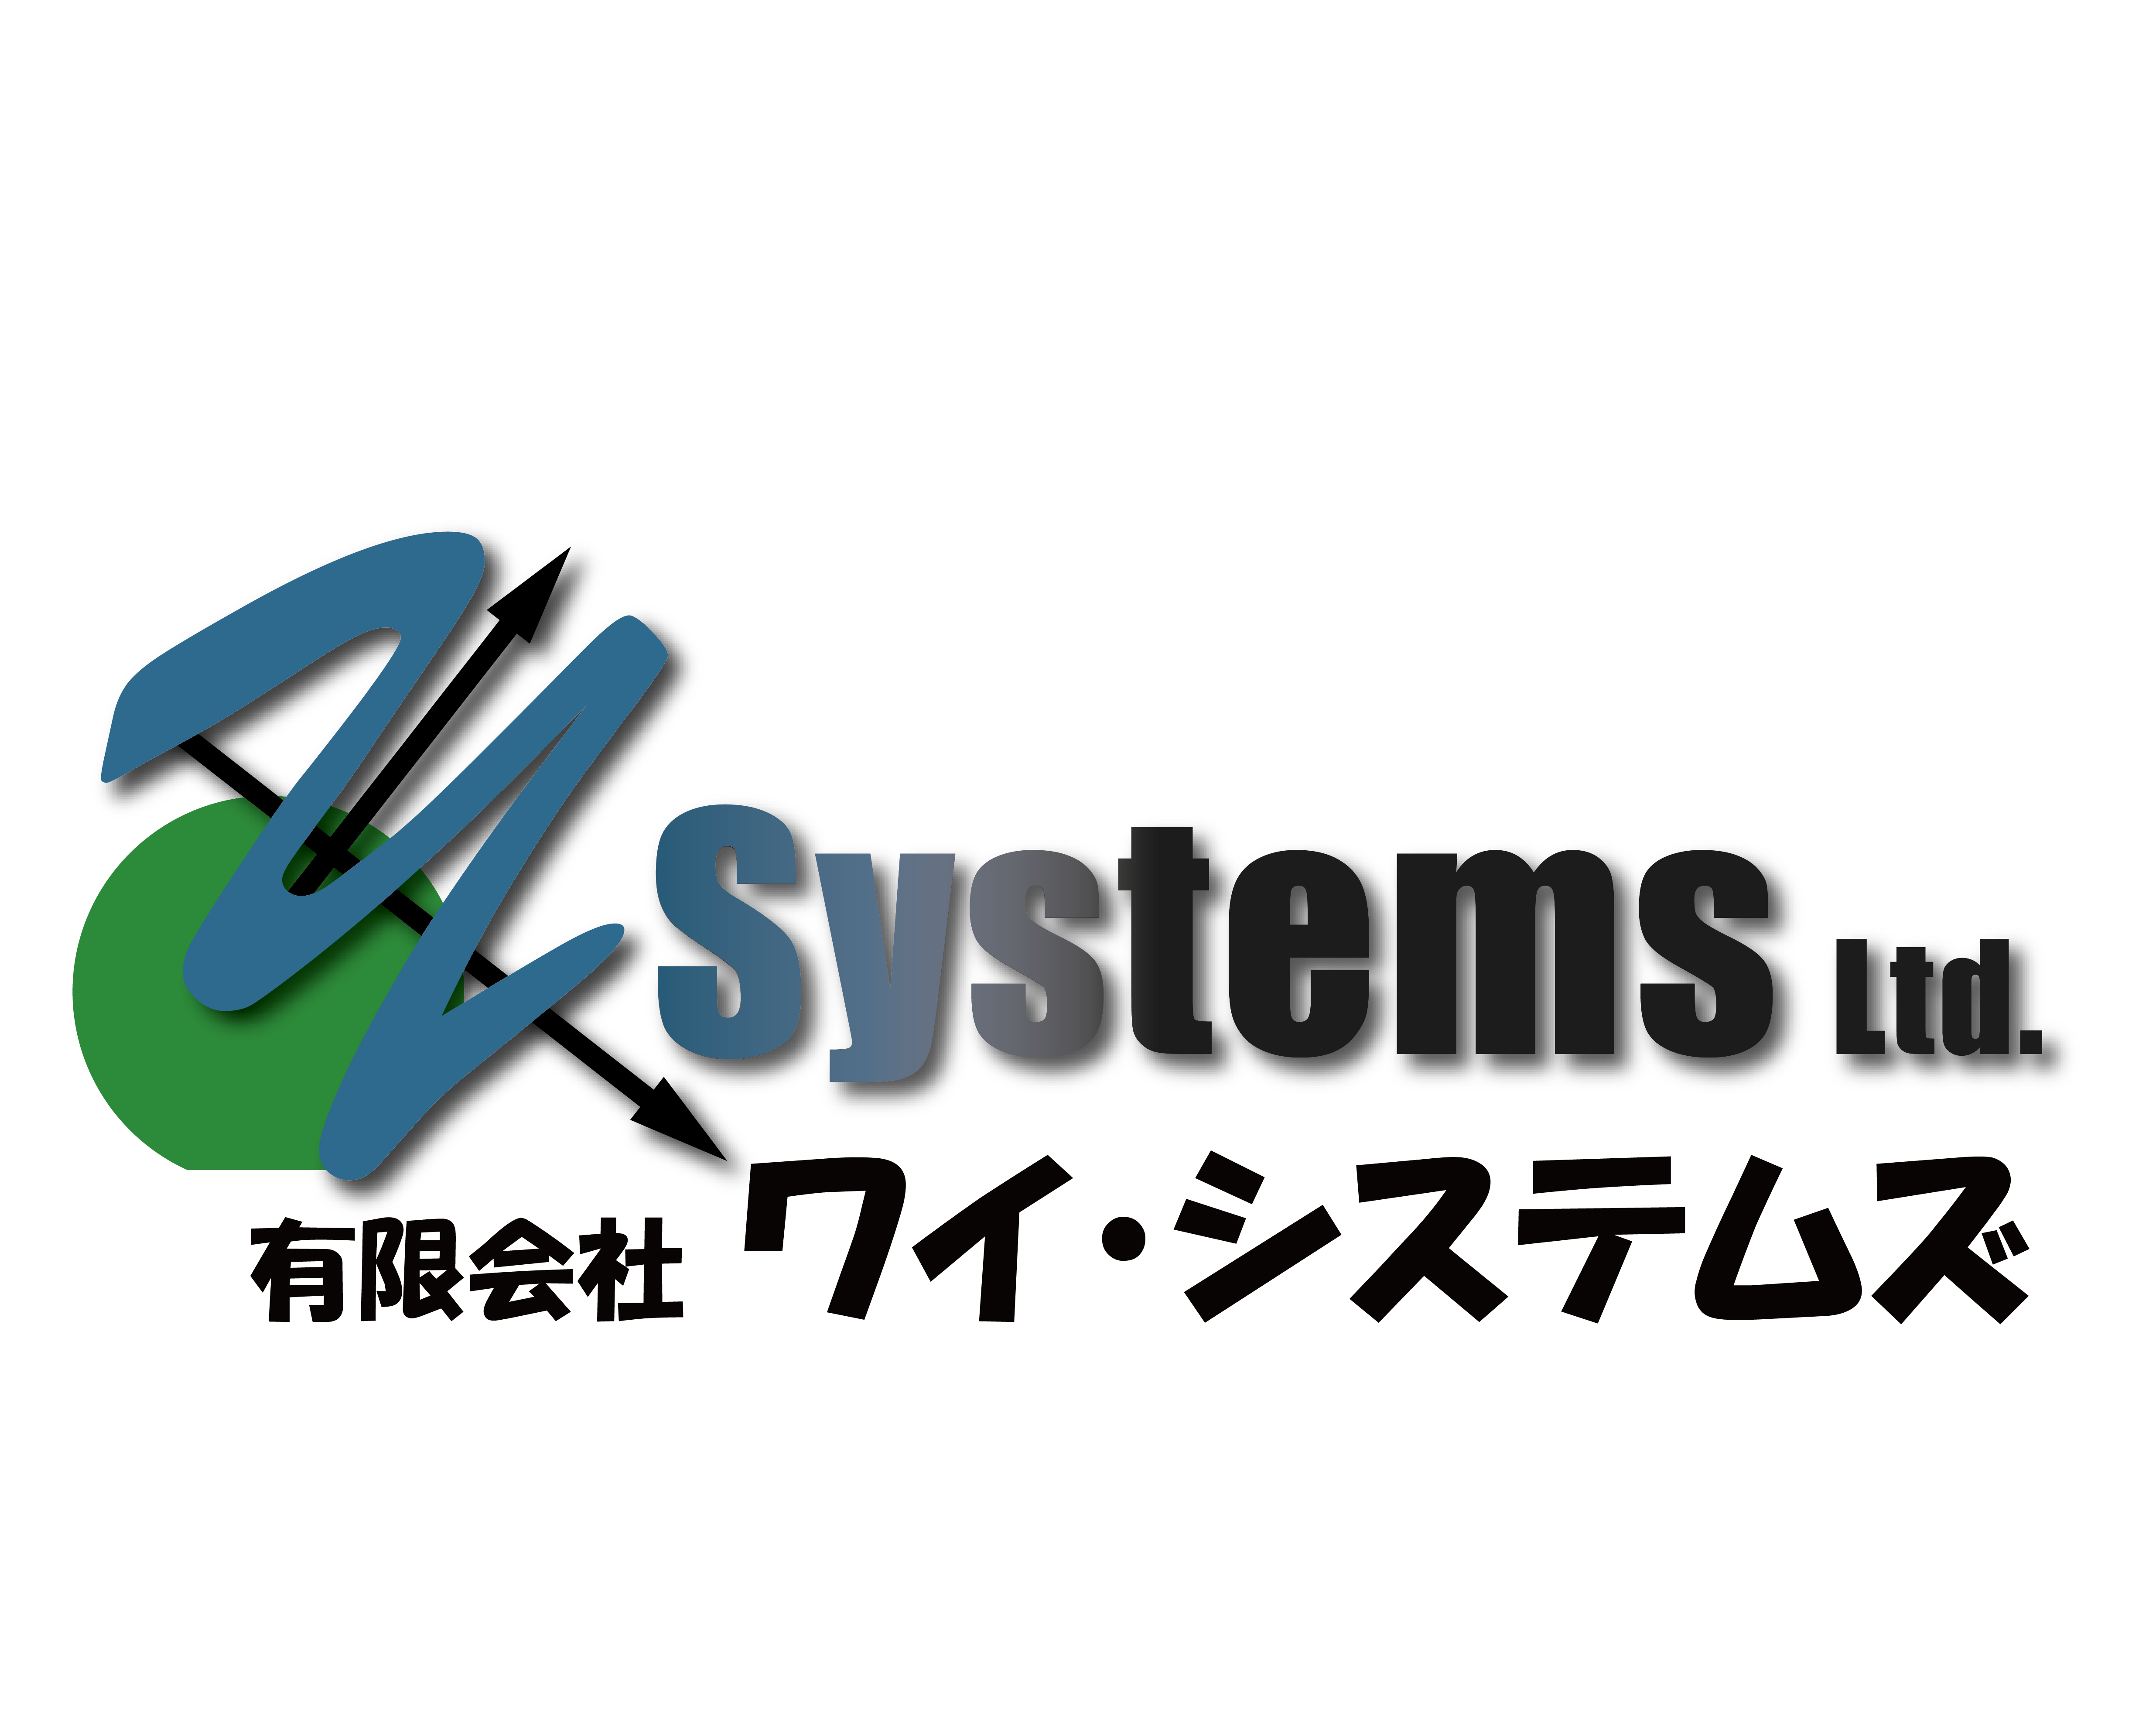 YSystems Ltd